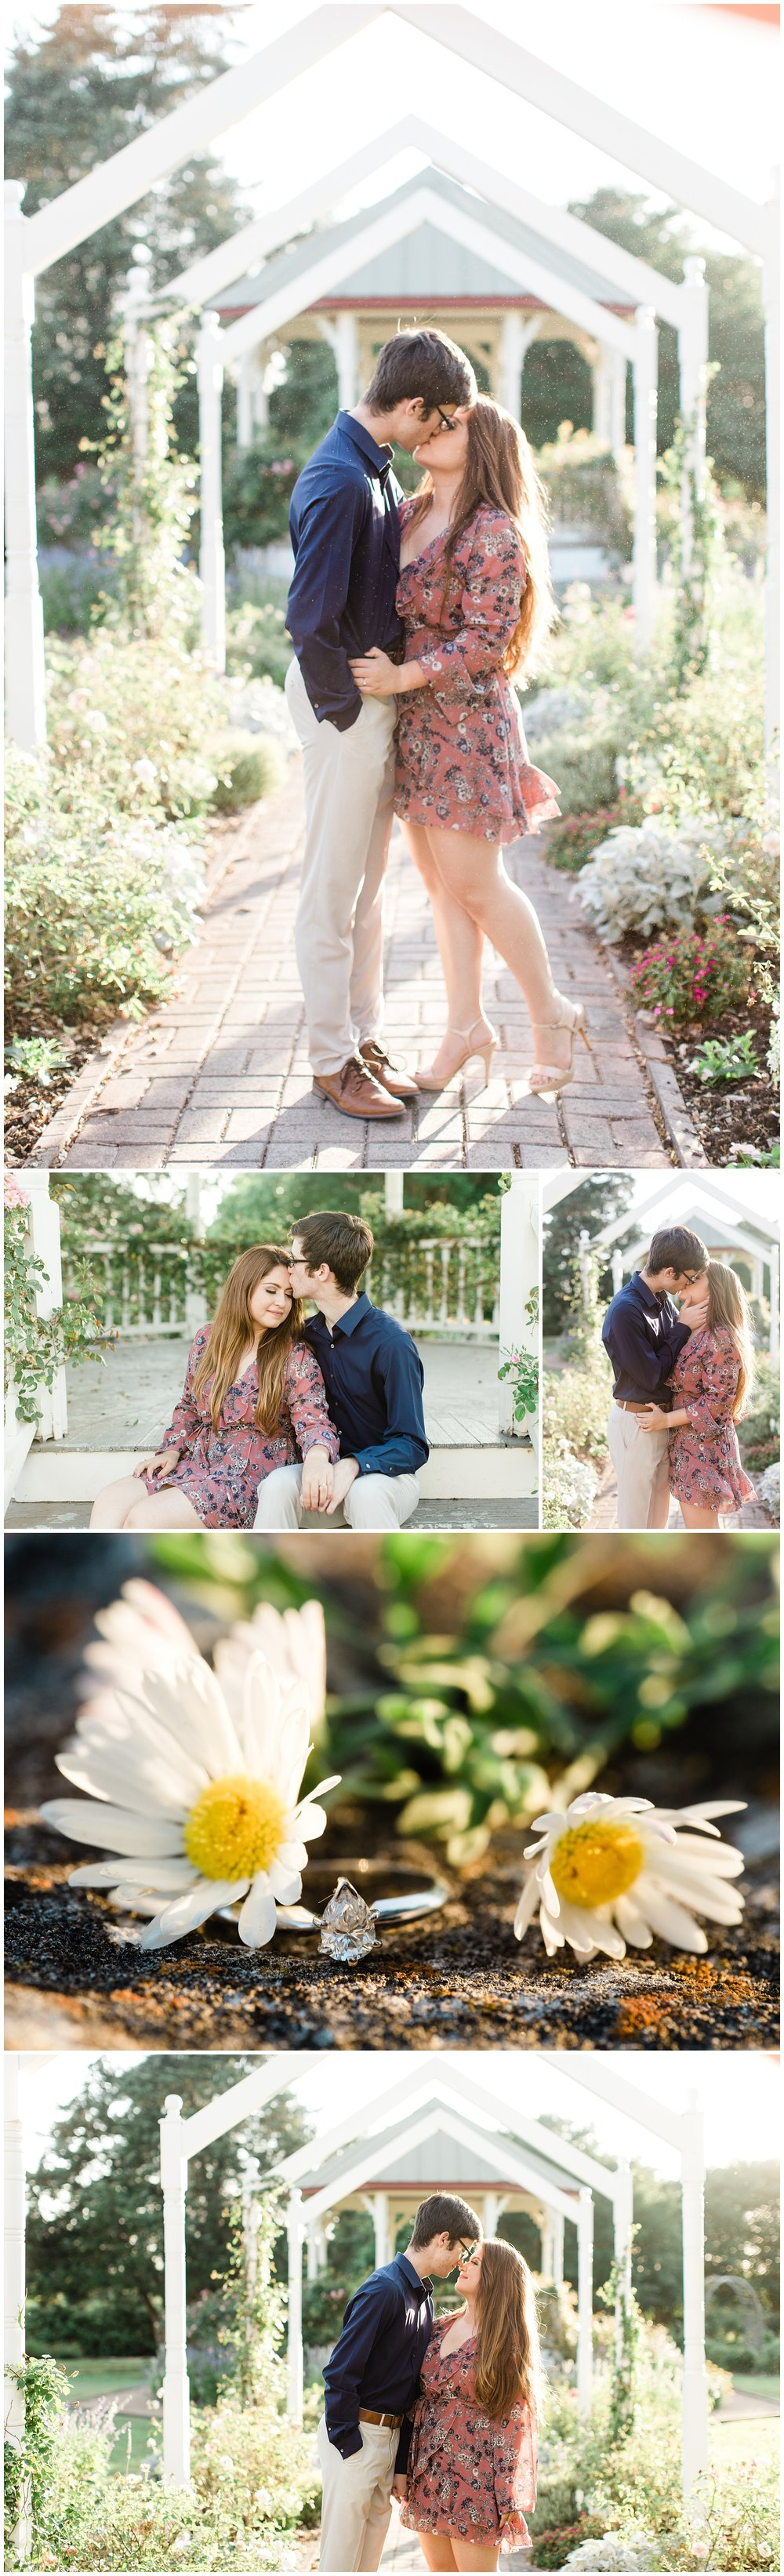 College_Station_Photographer_Engagement_0007.jpg